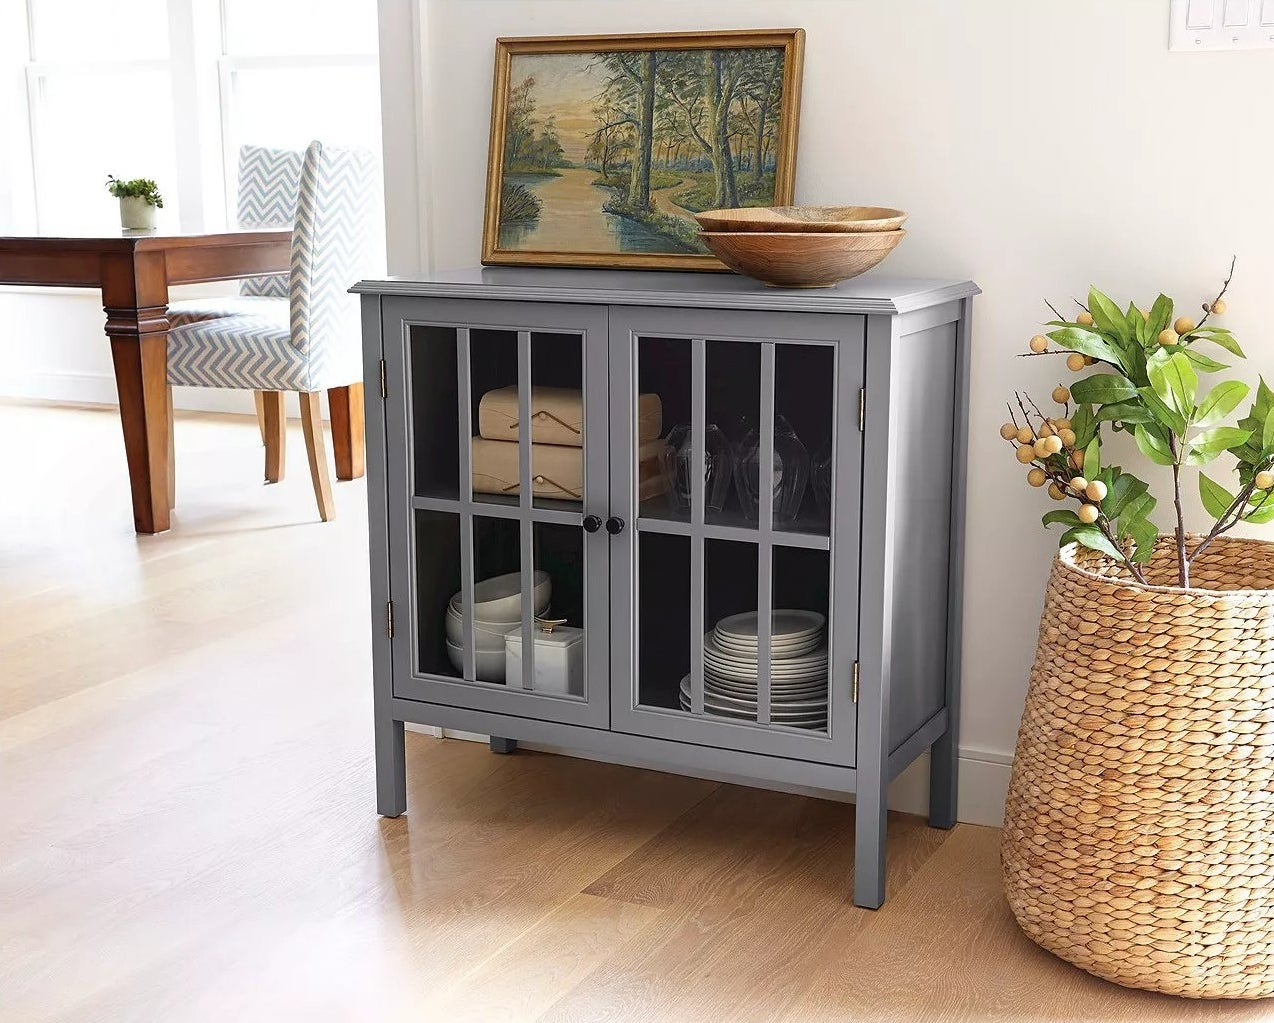 The cabinet with two glass doors in a living room